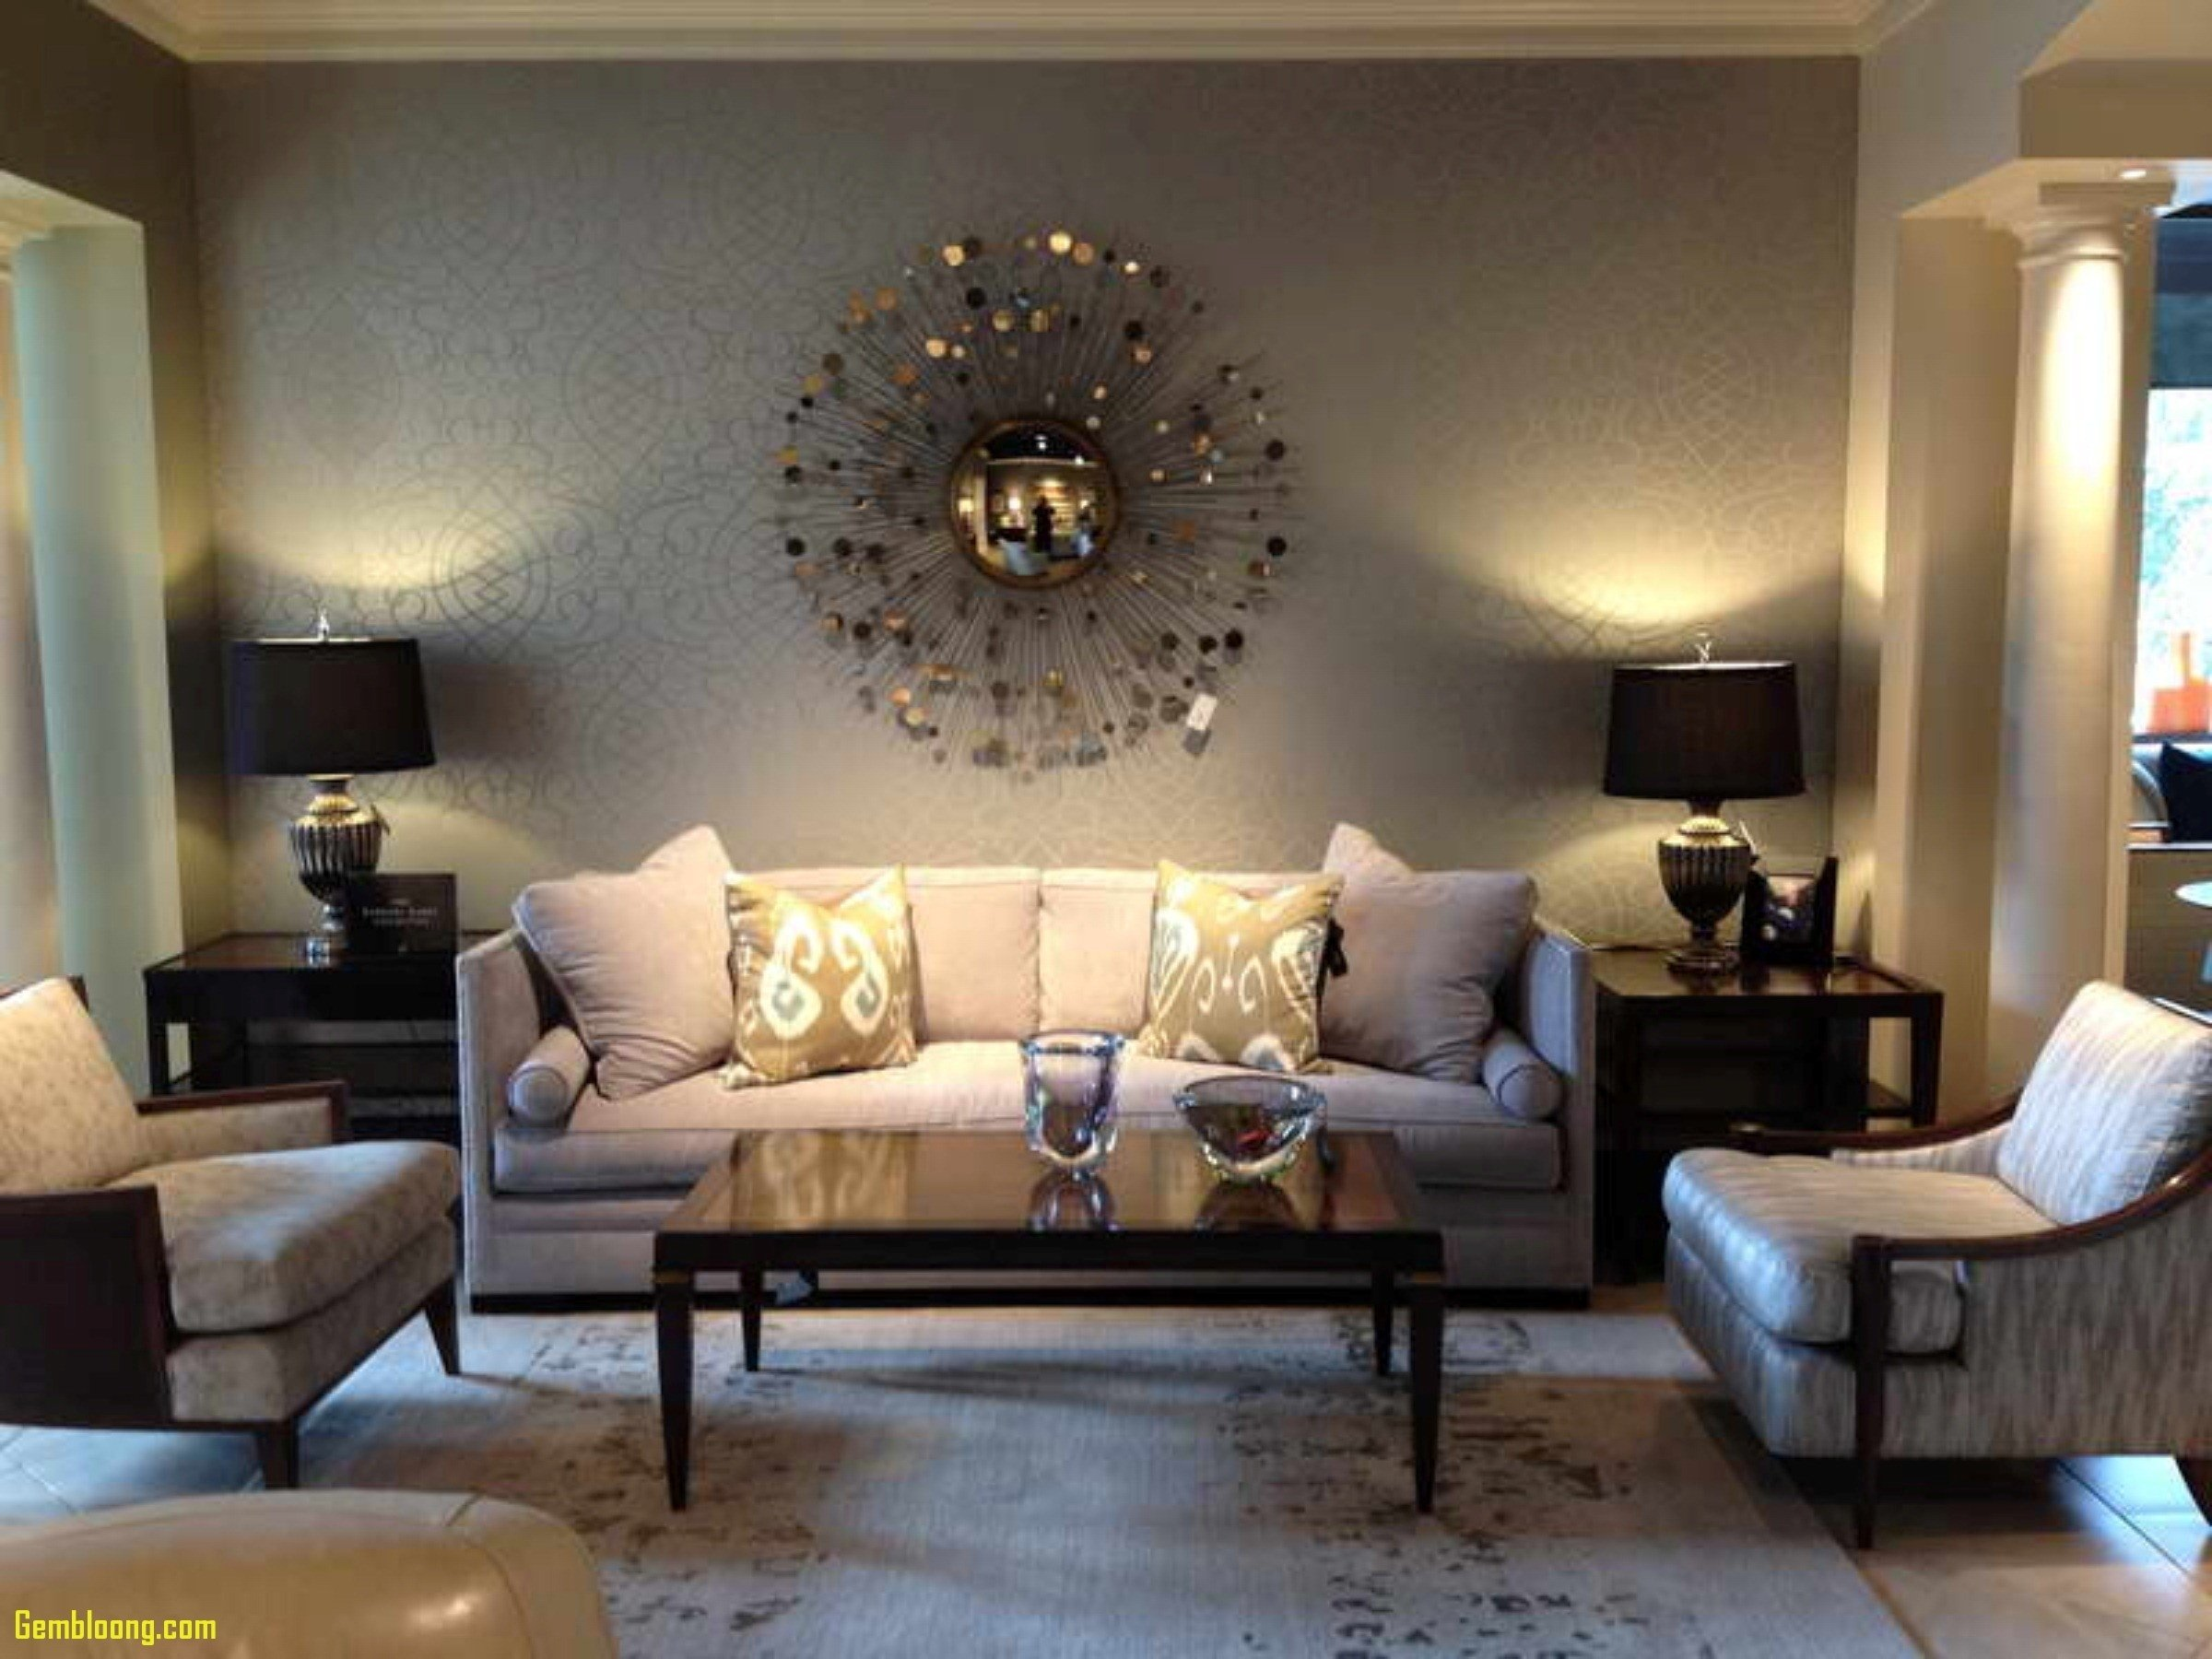 10 Amazing Decorating Ideas For Large Walls large wall decor ideas for living room archives best living room 2020